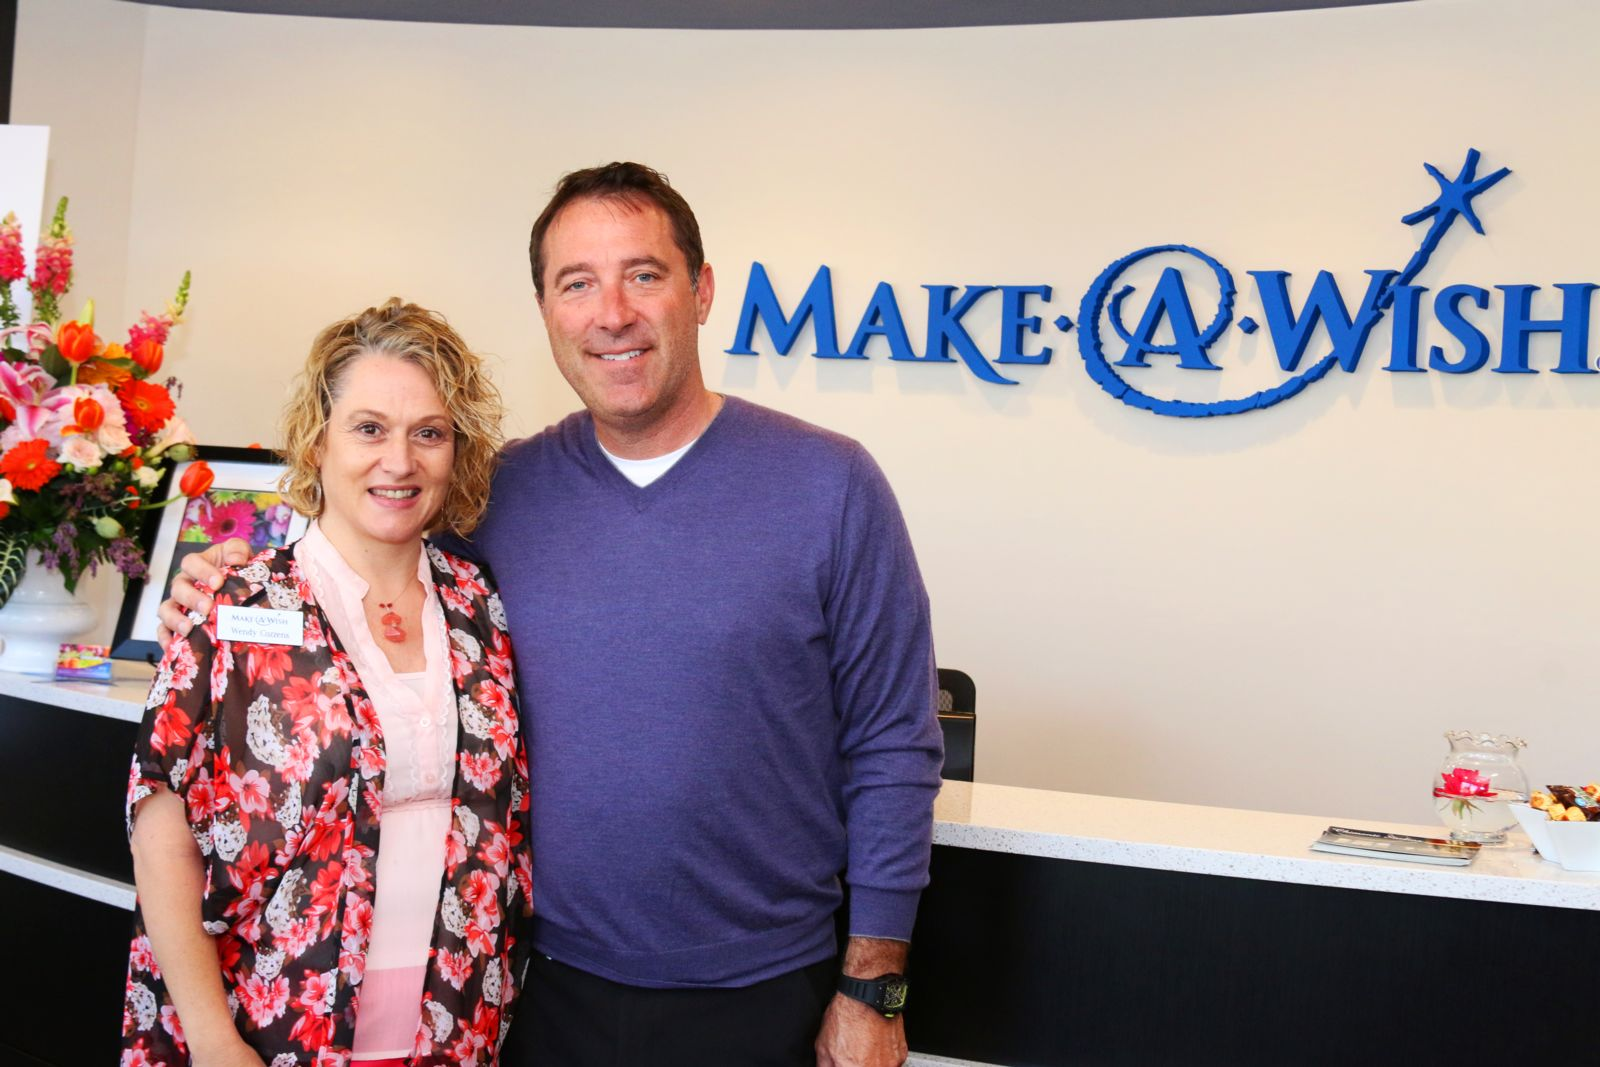 Attorney Jason Abraham at Make A Wish